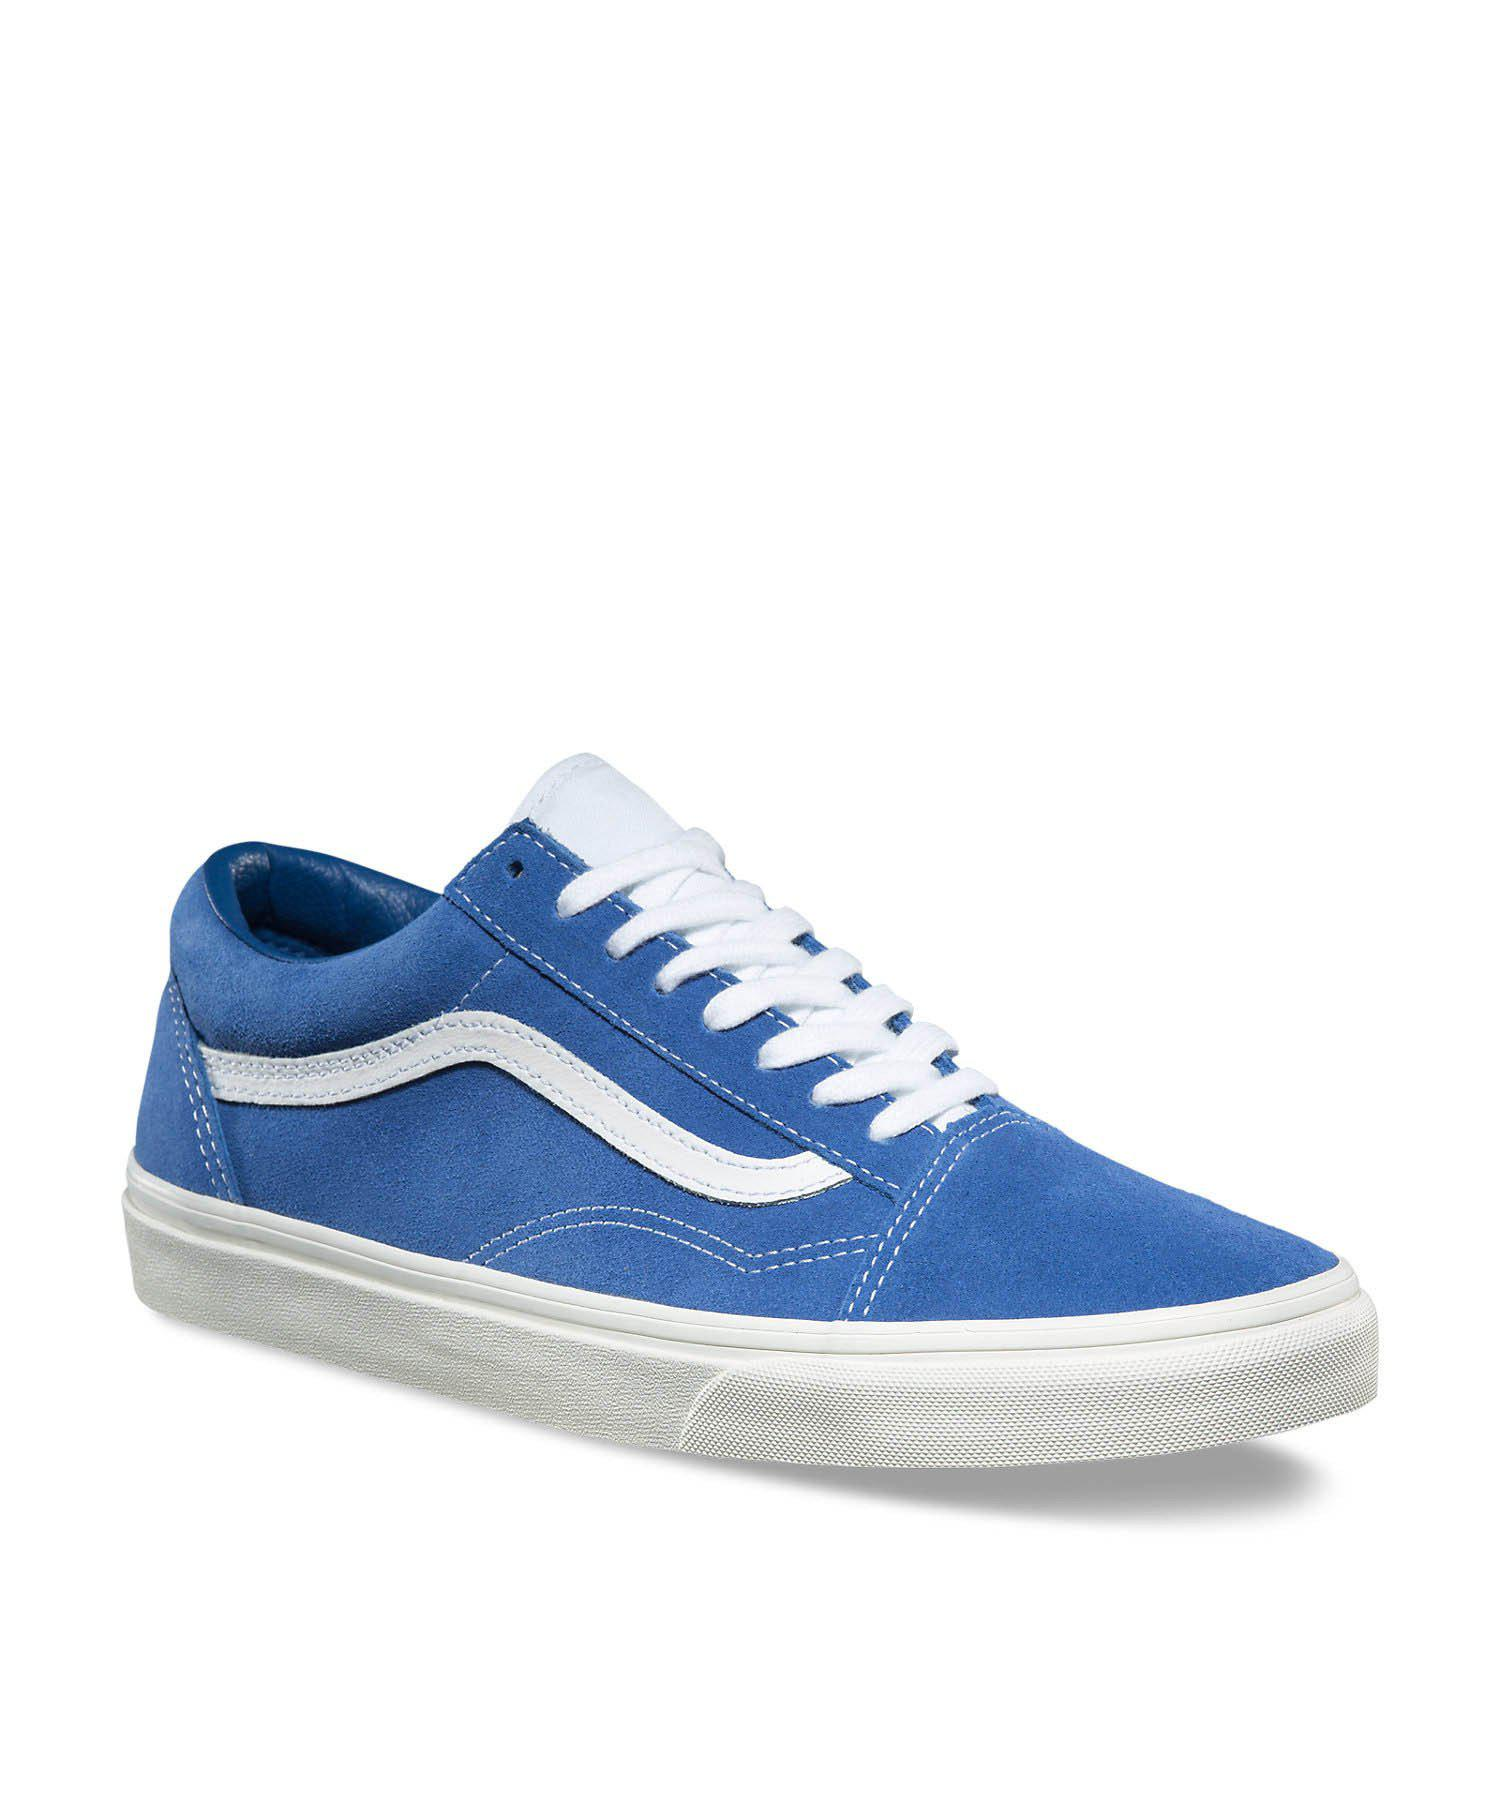 new style d8a74 28136 vans-BLUE-Old-Skool-Retro-Sport-In-Blue-Delft.jpeg